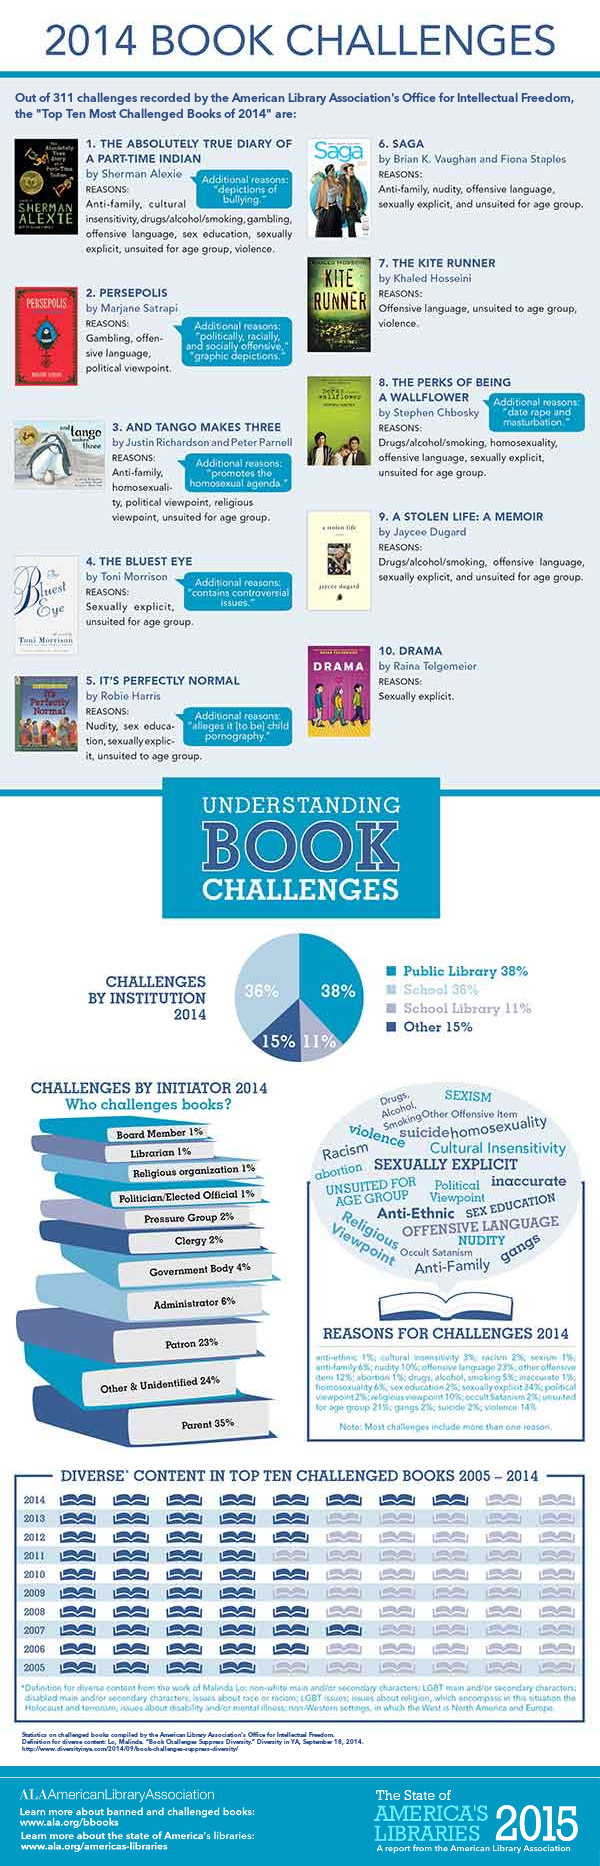 Celebrate Your Freedom to Read During #BannedBooksWeek. Check out the most surprising banned and challenged books from the last five years, plus more resources to show your support for the 1st Amendment.  Infographic courtesy of the American Library Association.